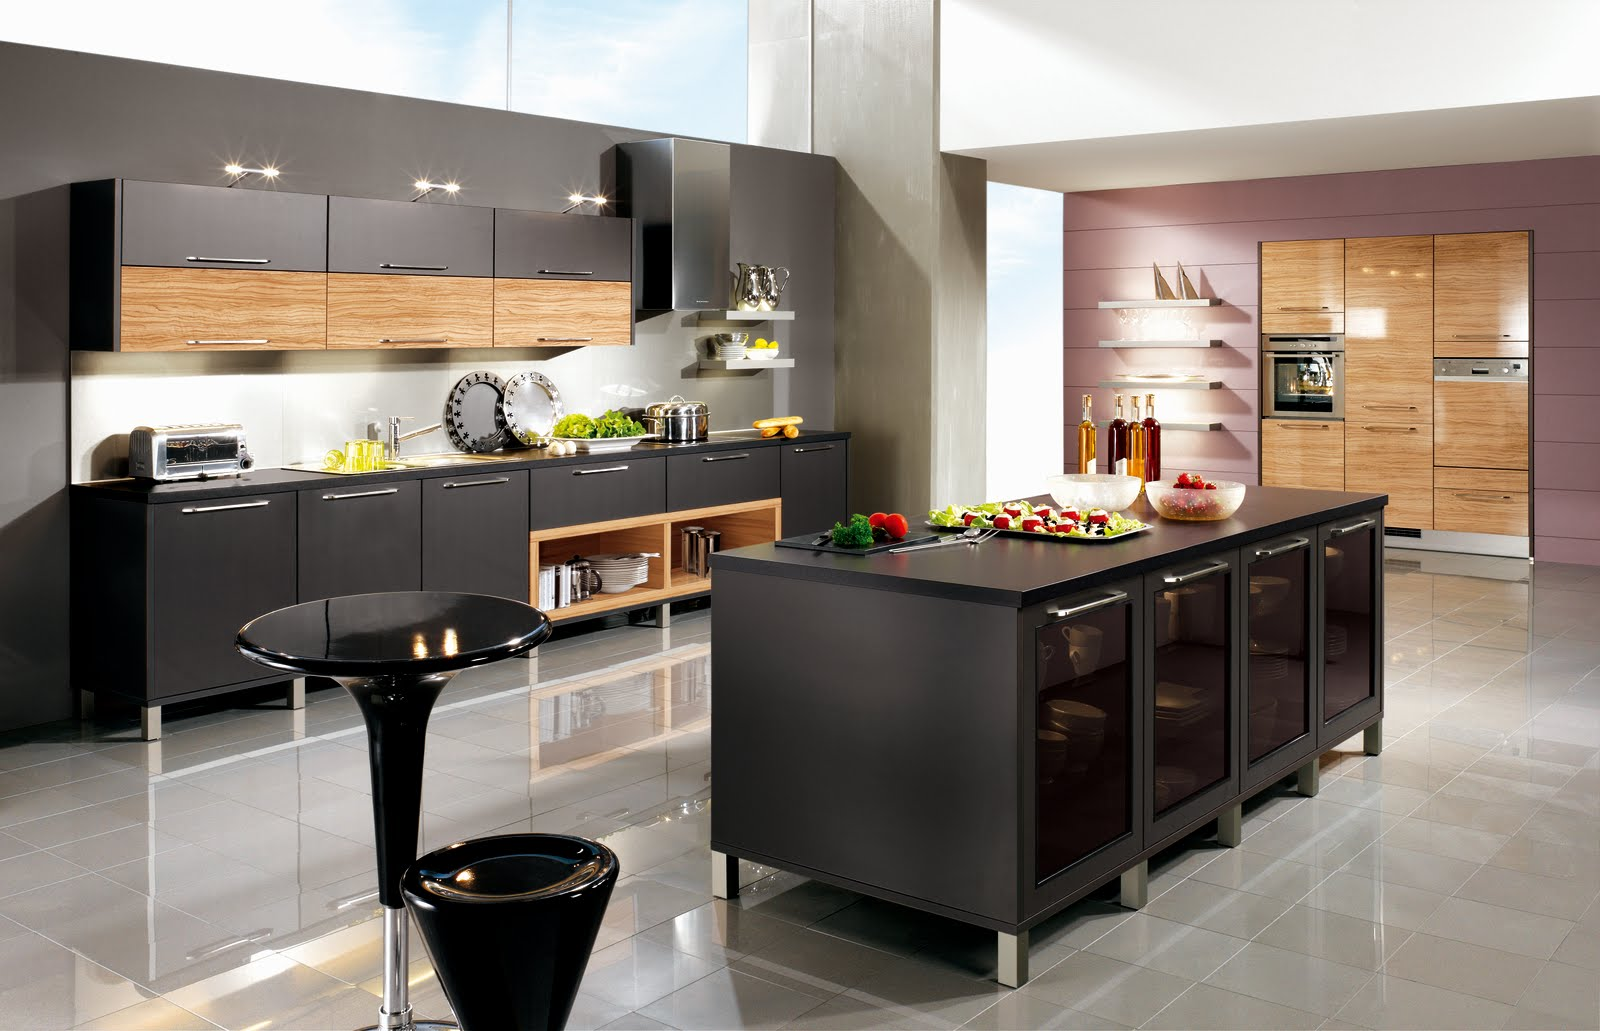 gabinetes de cocina cerraduras de las puertas. Black Bedroom Furniture Sets. Home Design Ideas